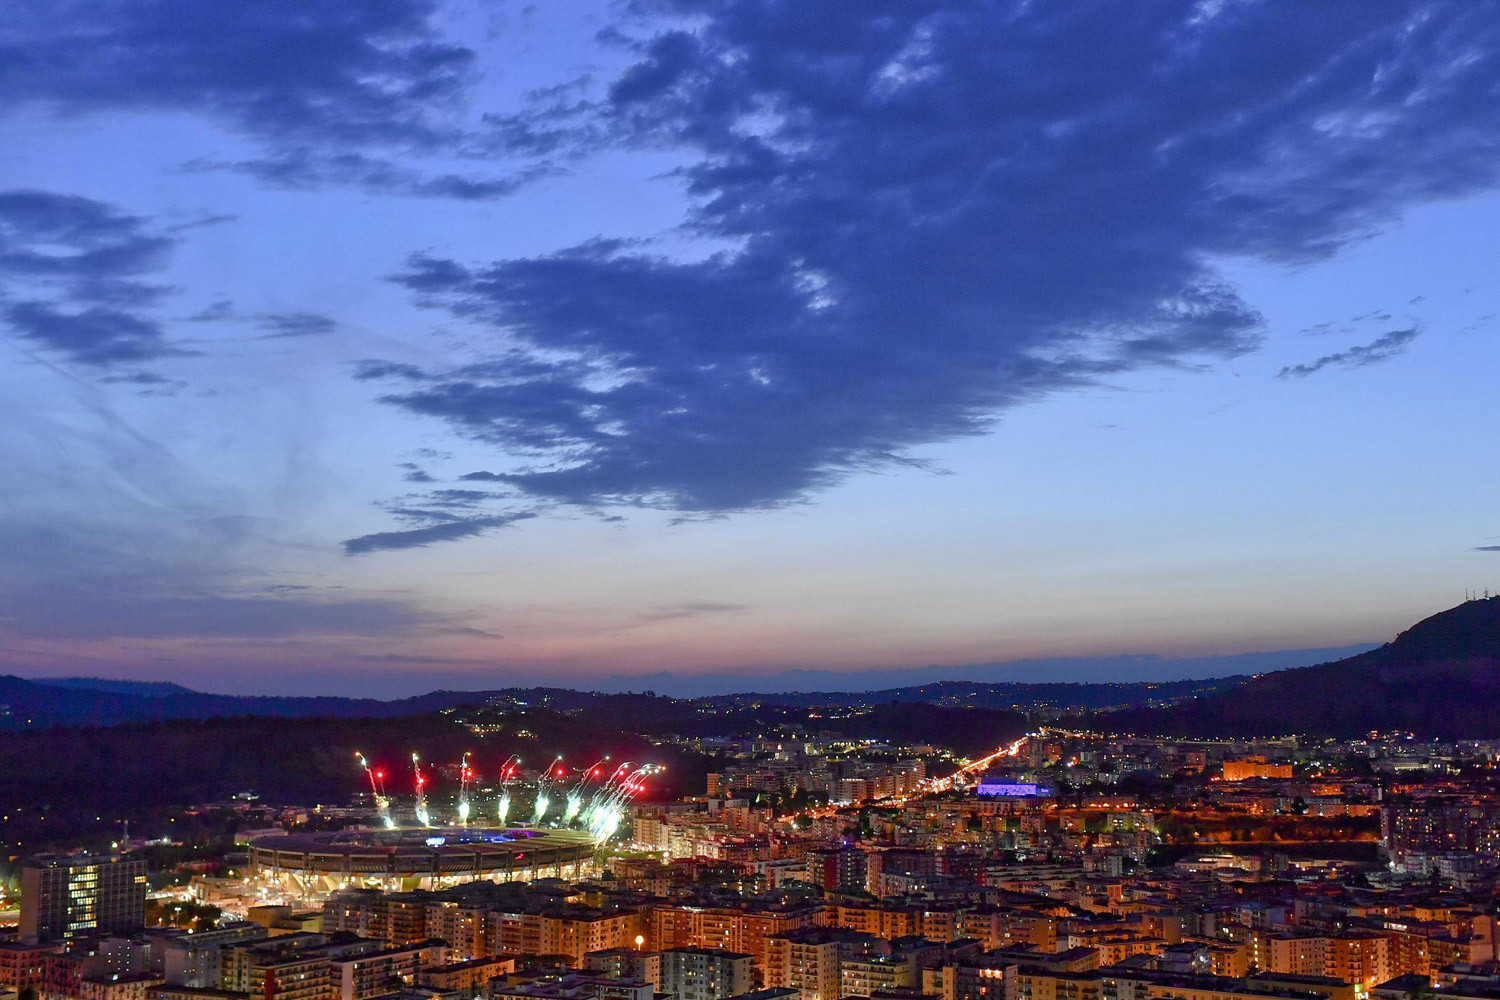 At Naples 2019, the International University Sports Federation confirmed Yekaterinburg as host city for the 2023 Summer Universiade ©FISU